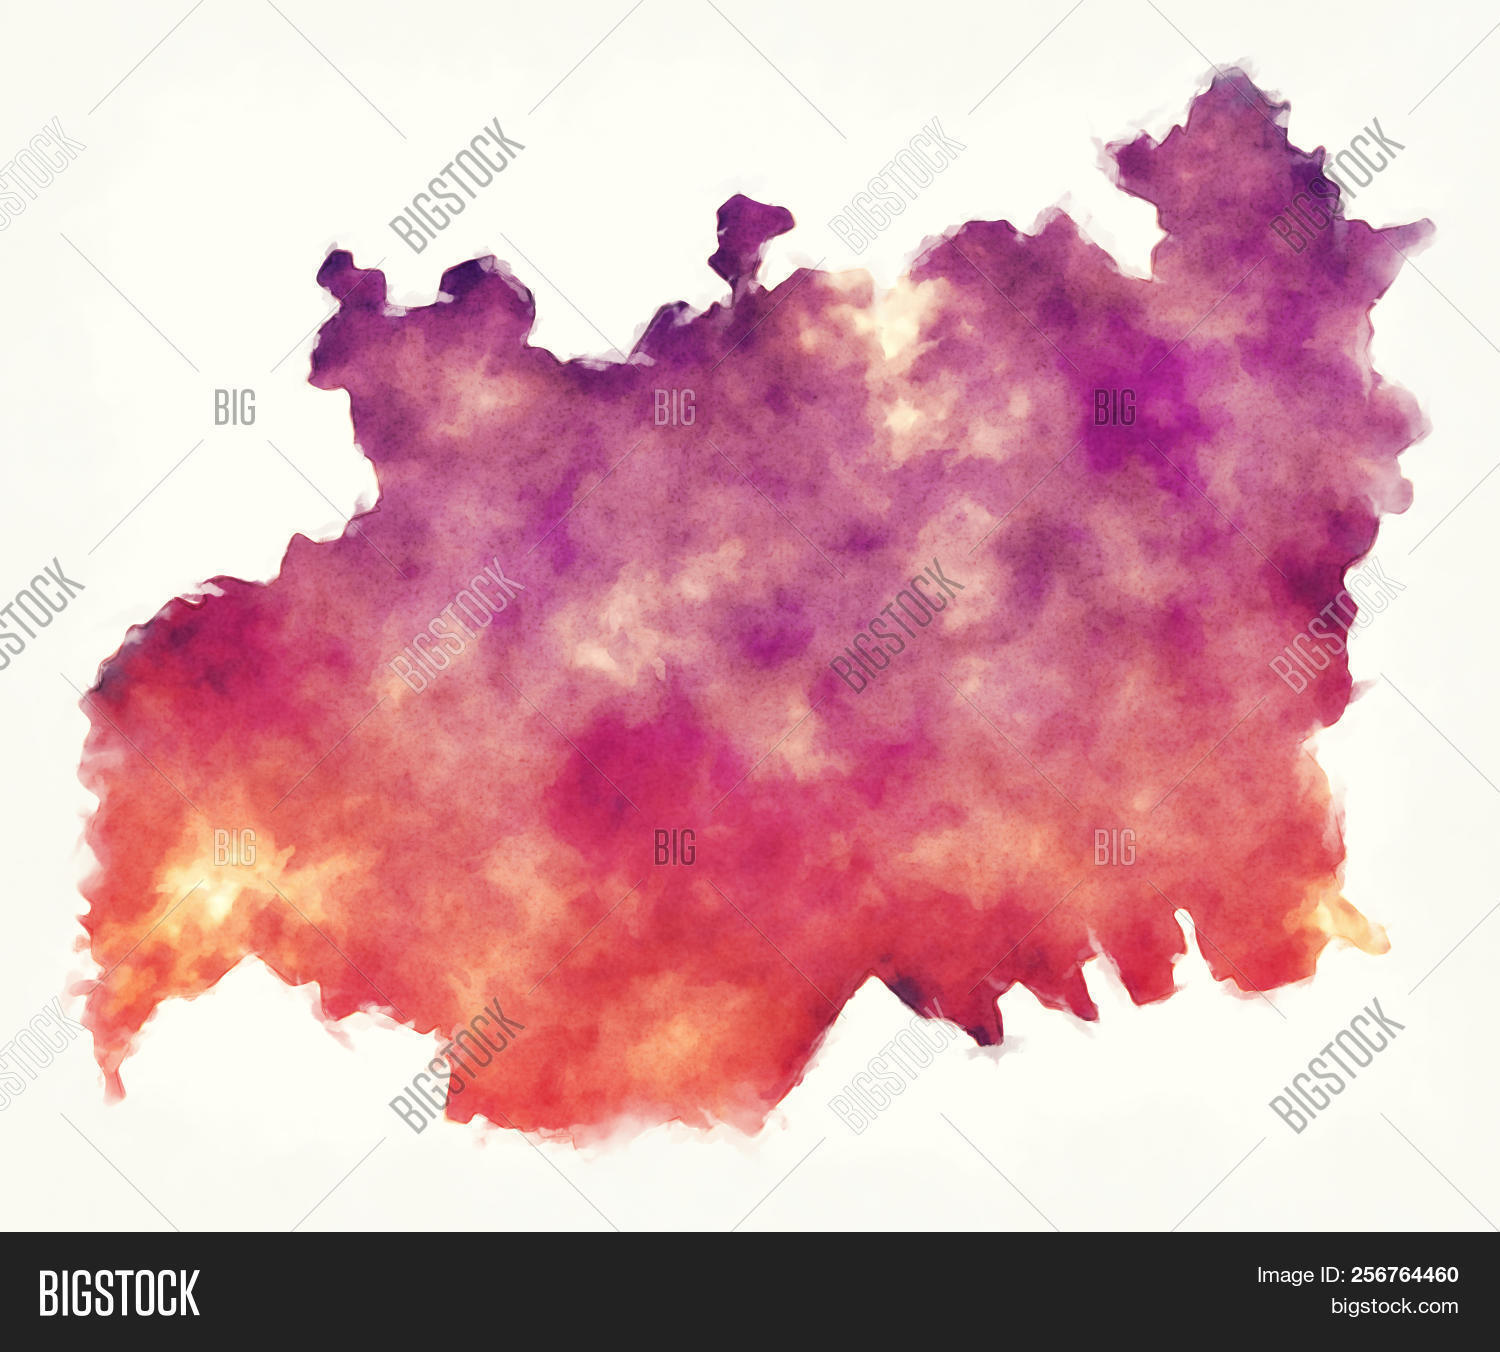 Map Of England Gloucestershire.Gloucestershire Map Image Photo Free Trial Bigstock